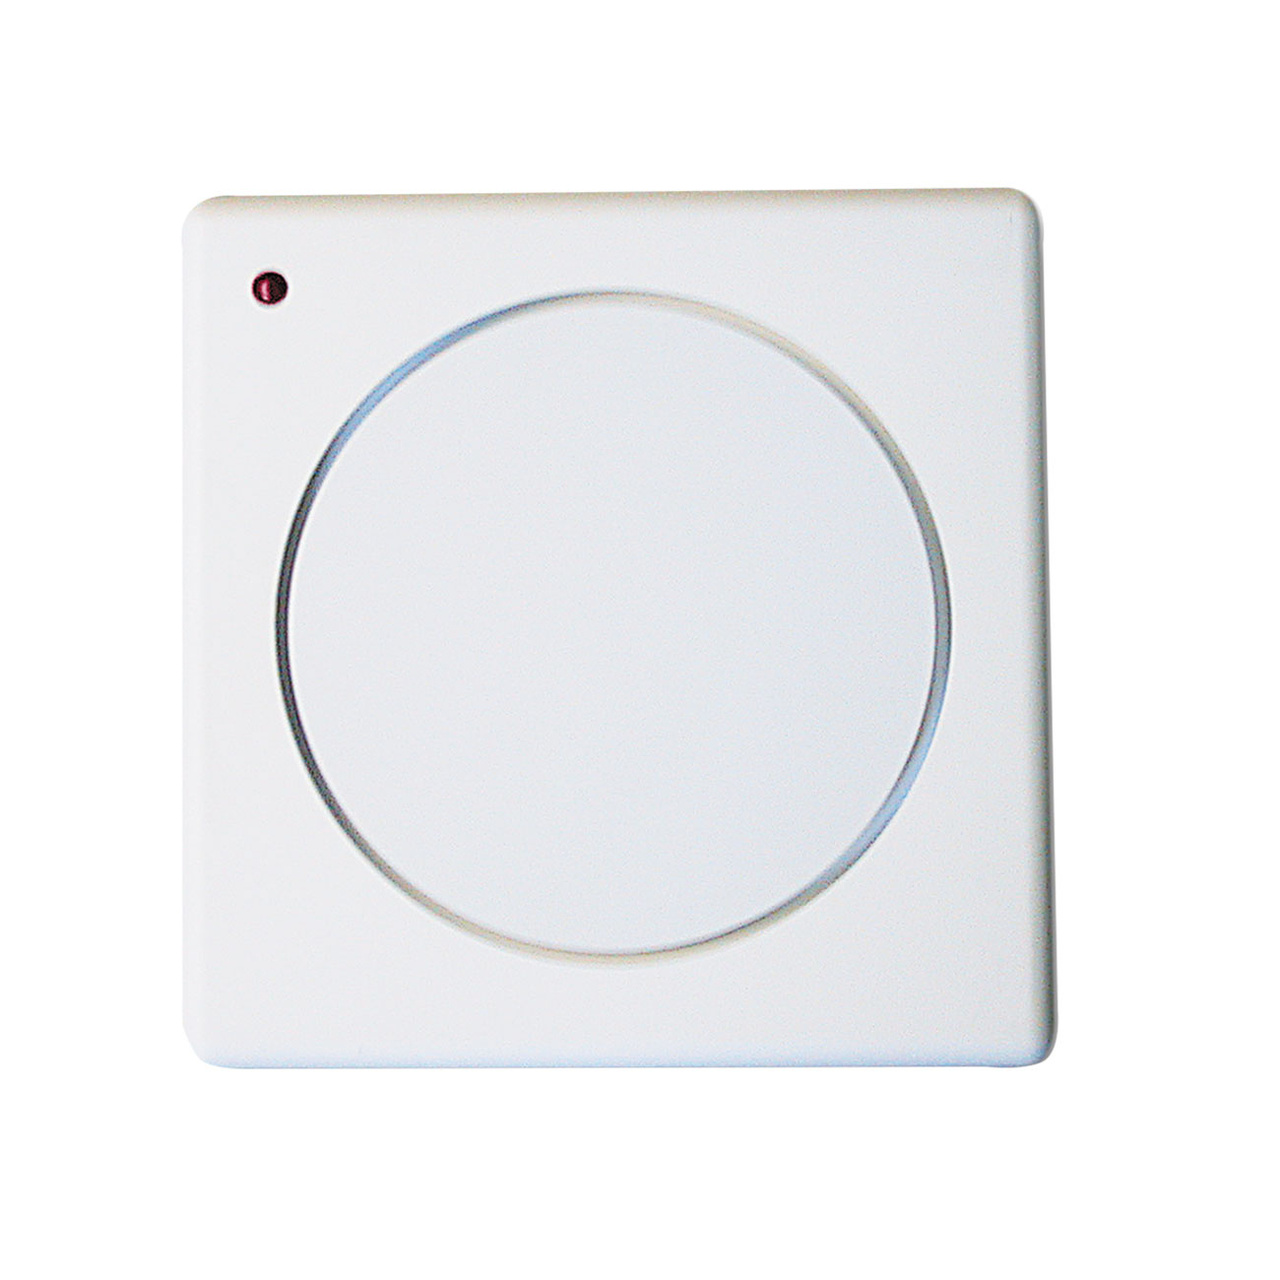 WATT W-500A ULTRASONIC CEILING OCCUPANCY SENSOR 24 VDC, 500 SQ FT